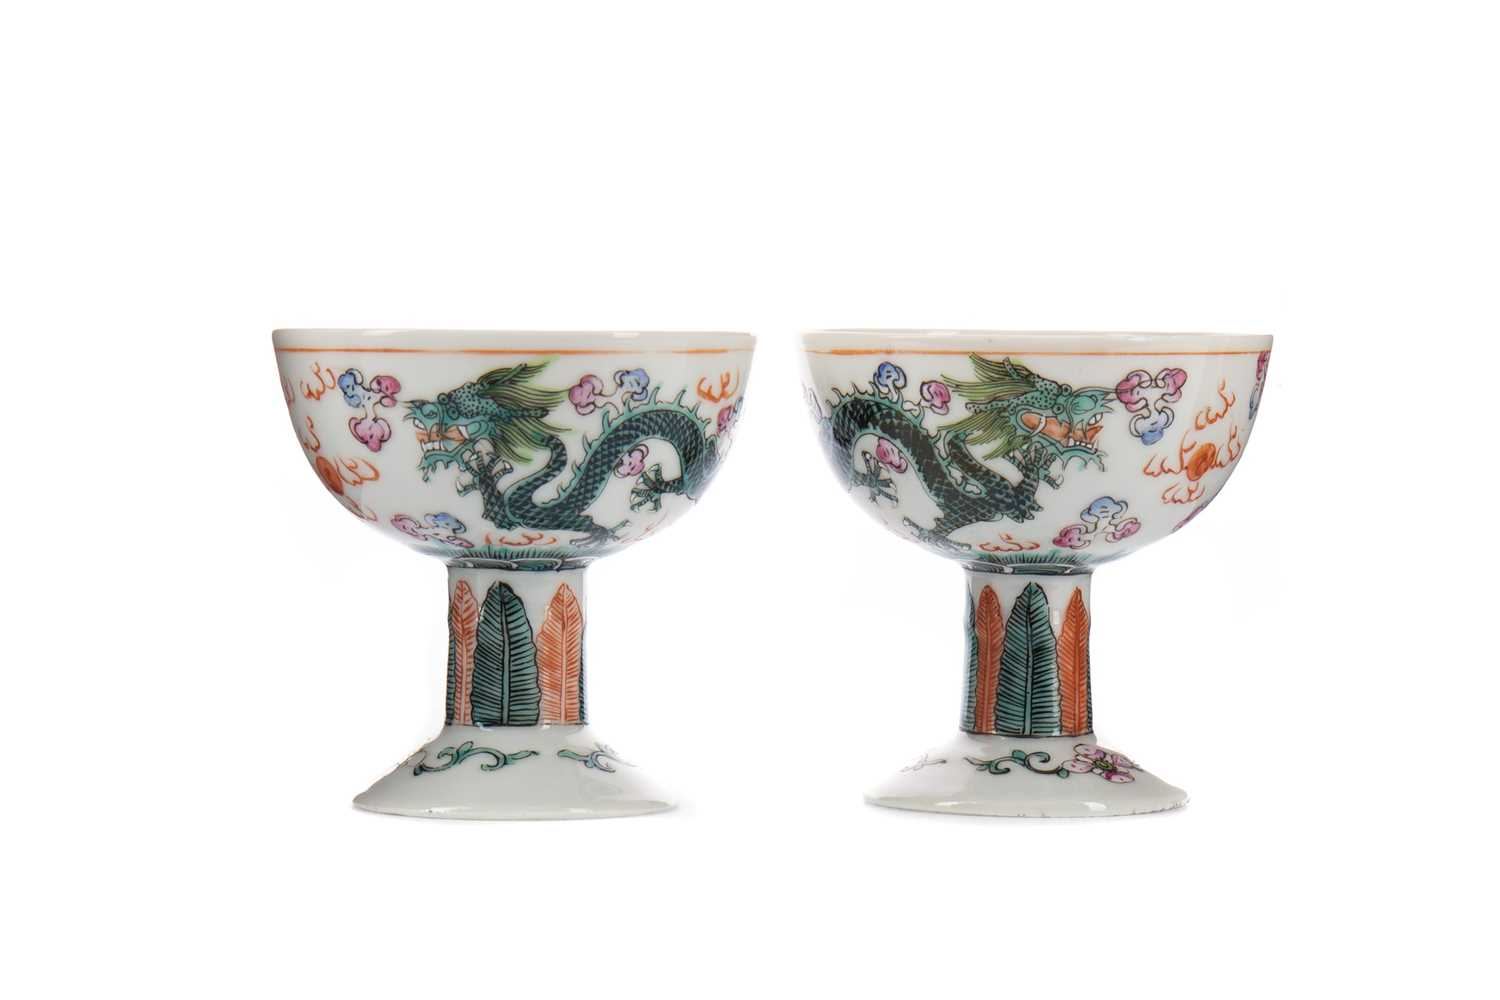 Lot 1609 - A PAIR OF 20TH CENTURY CHINESE STEMMED CUPS